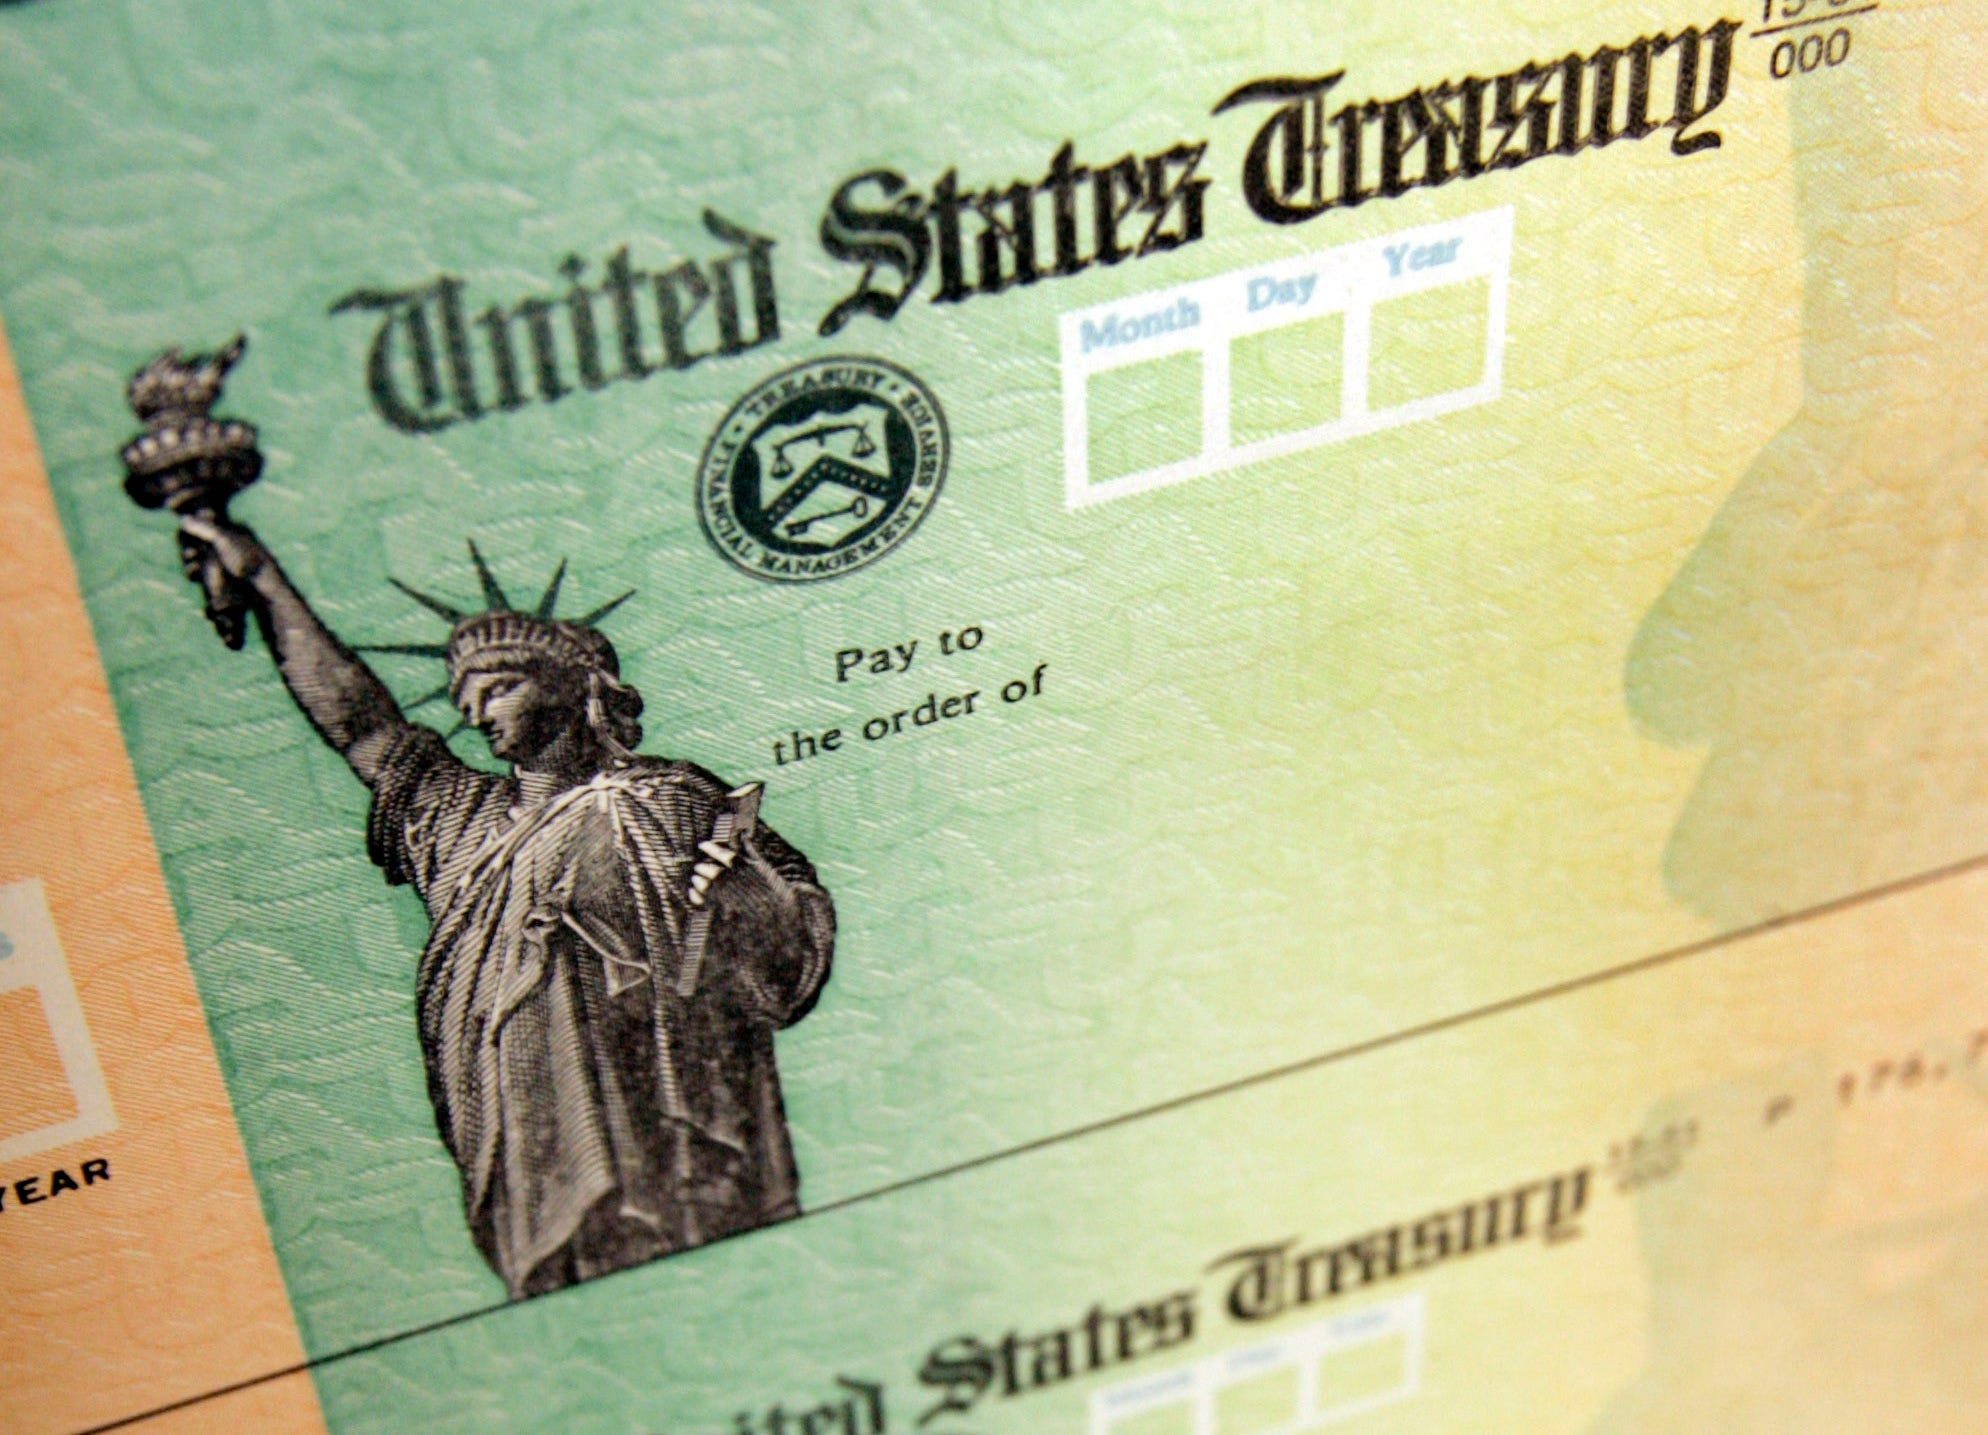 No stimulus check yet? Use IRS 'Get My Payment' tool to find the status of new COVID relief payments